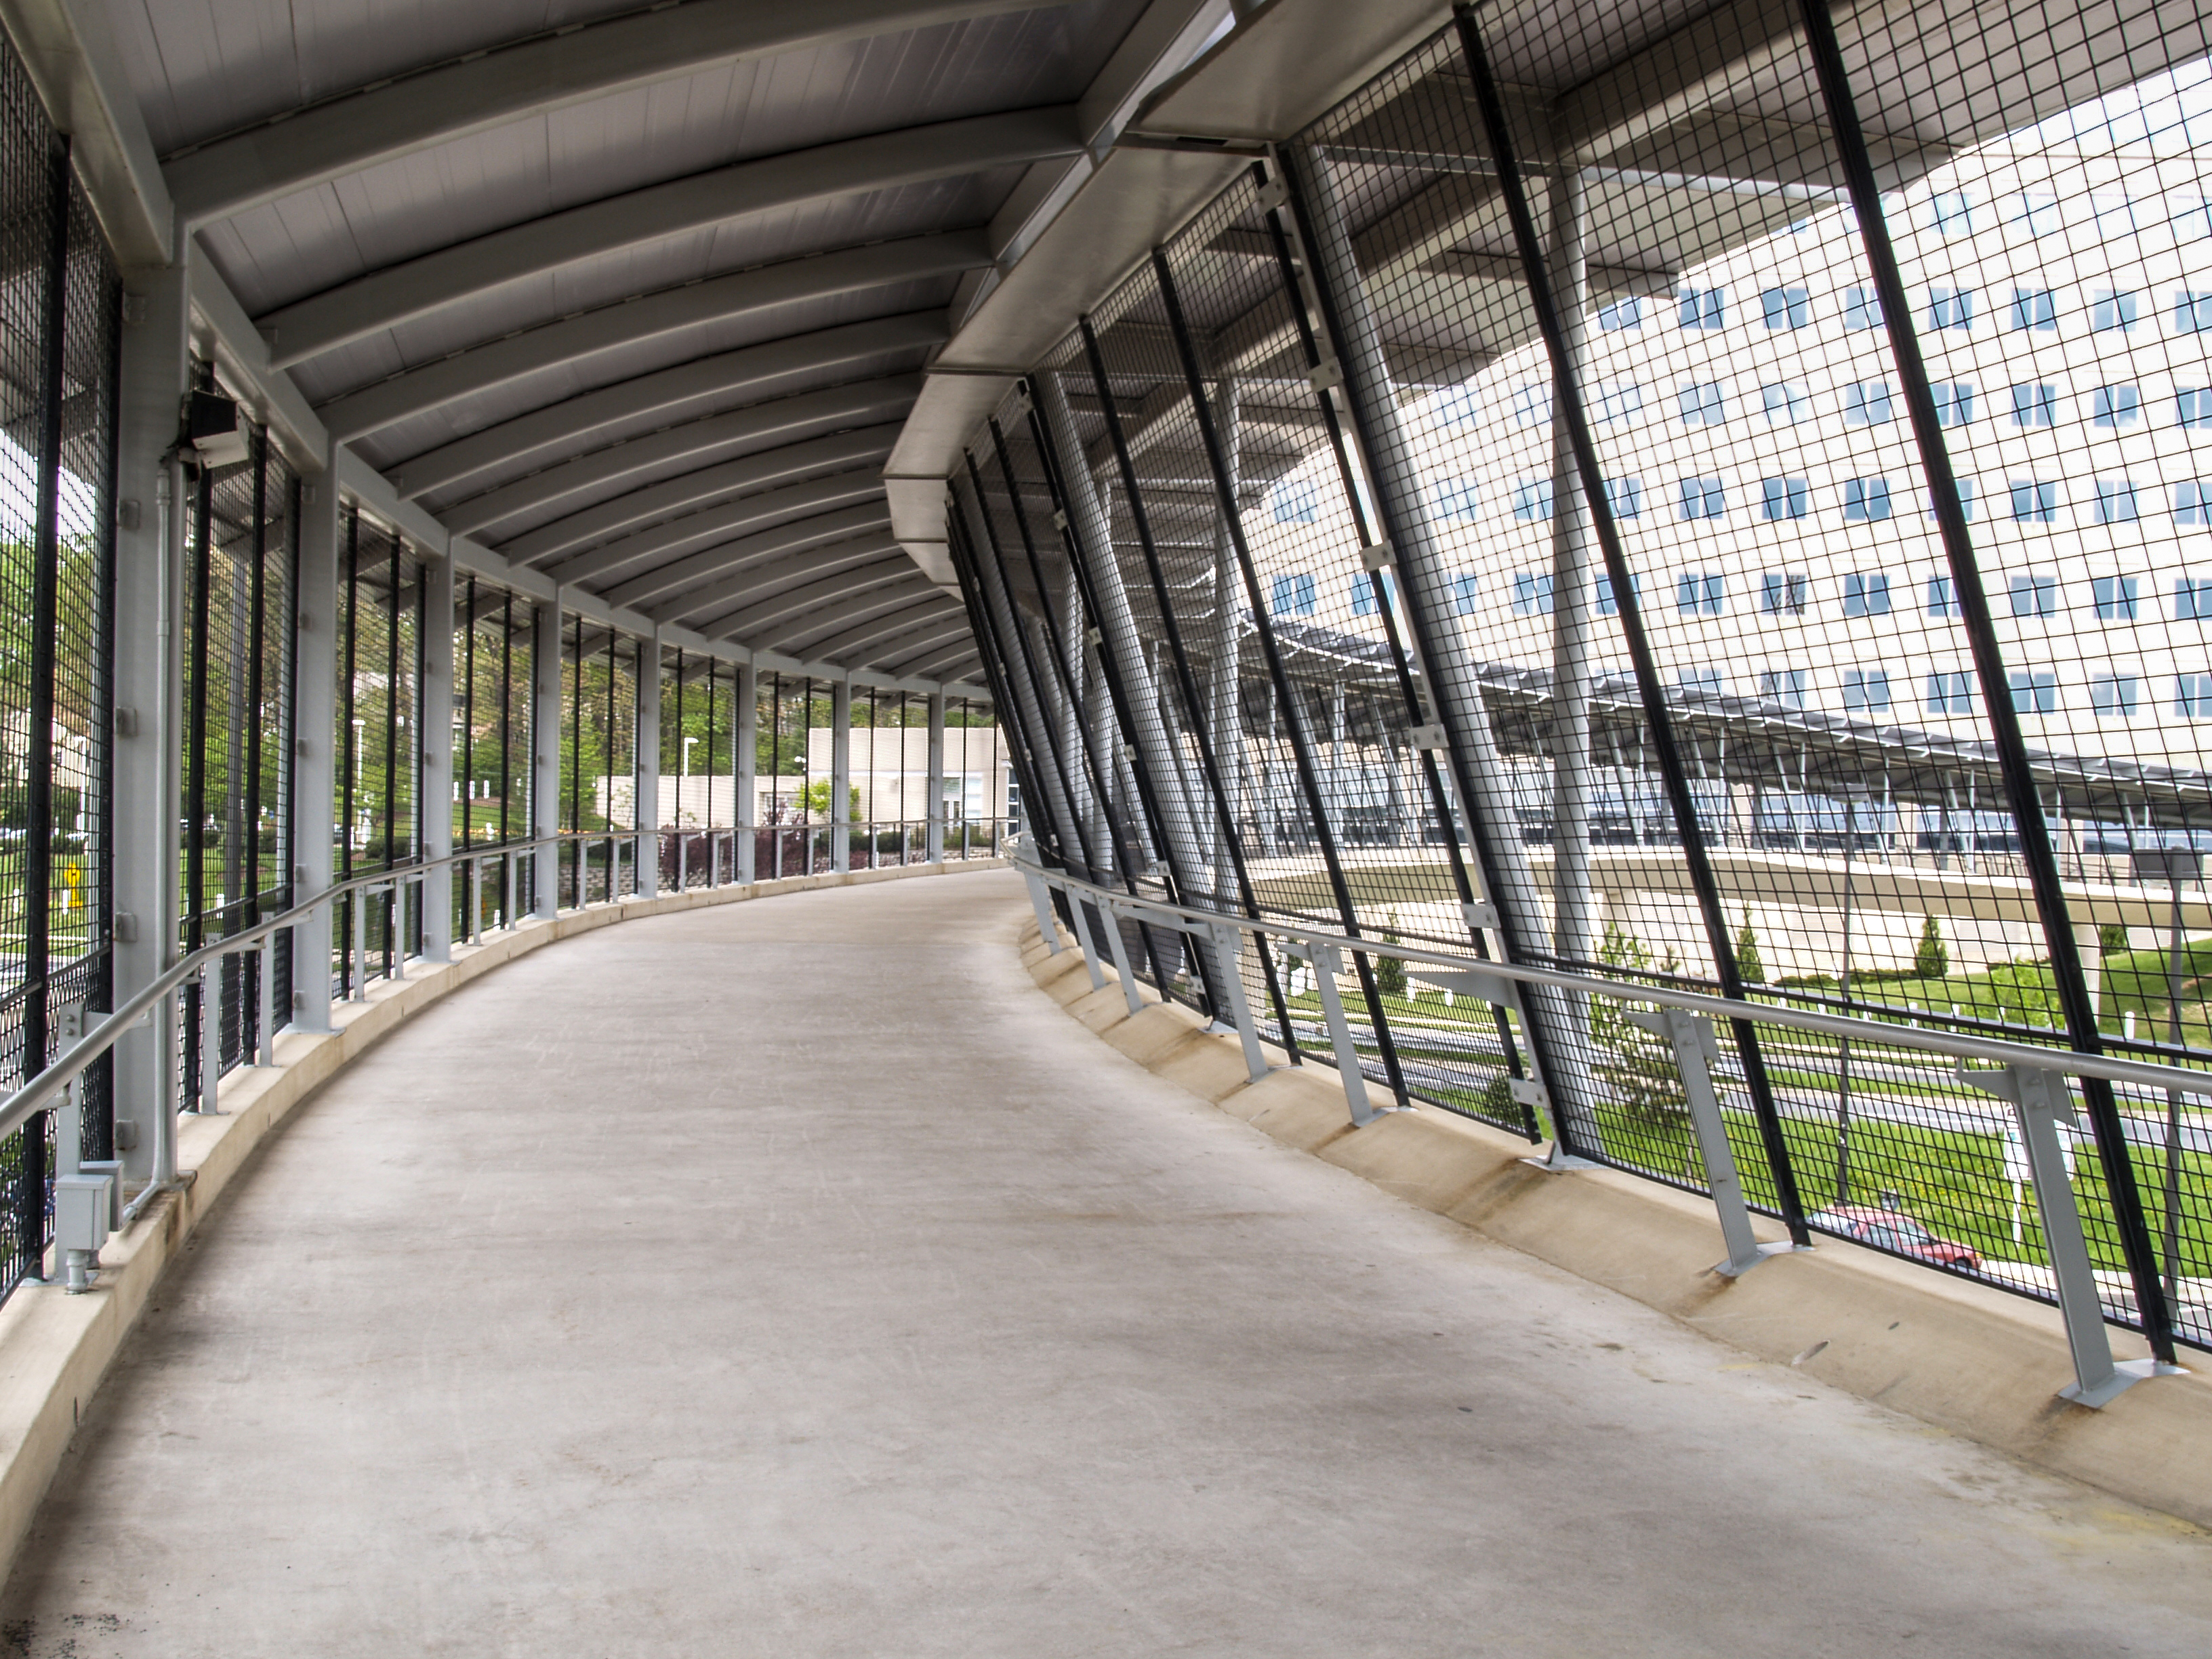 Inside the IRS Building Walkway, Banker Wire mesh serves as an attractive alternative to chainlink fencing.